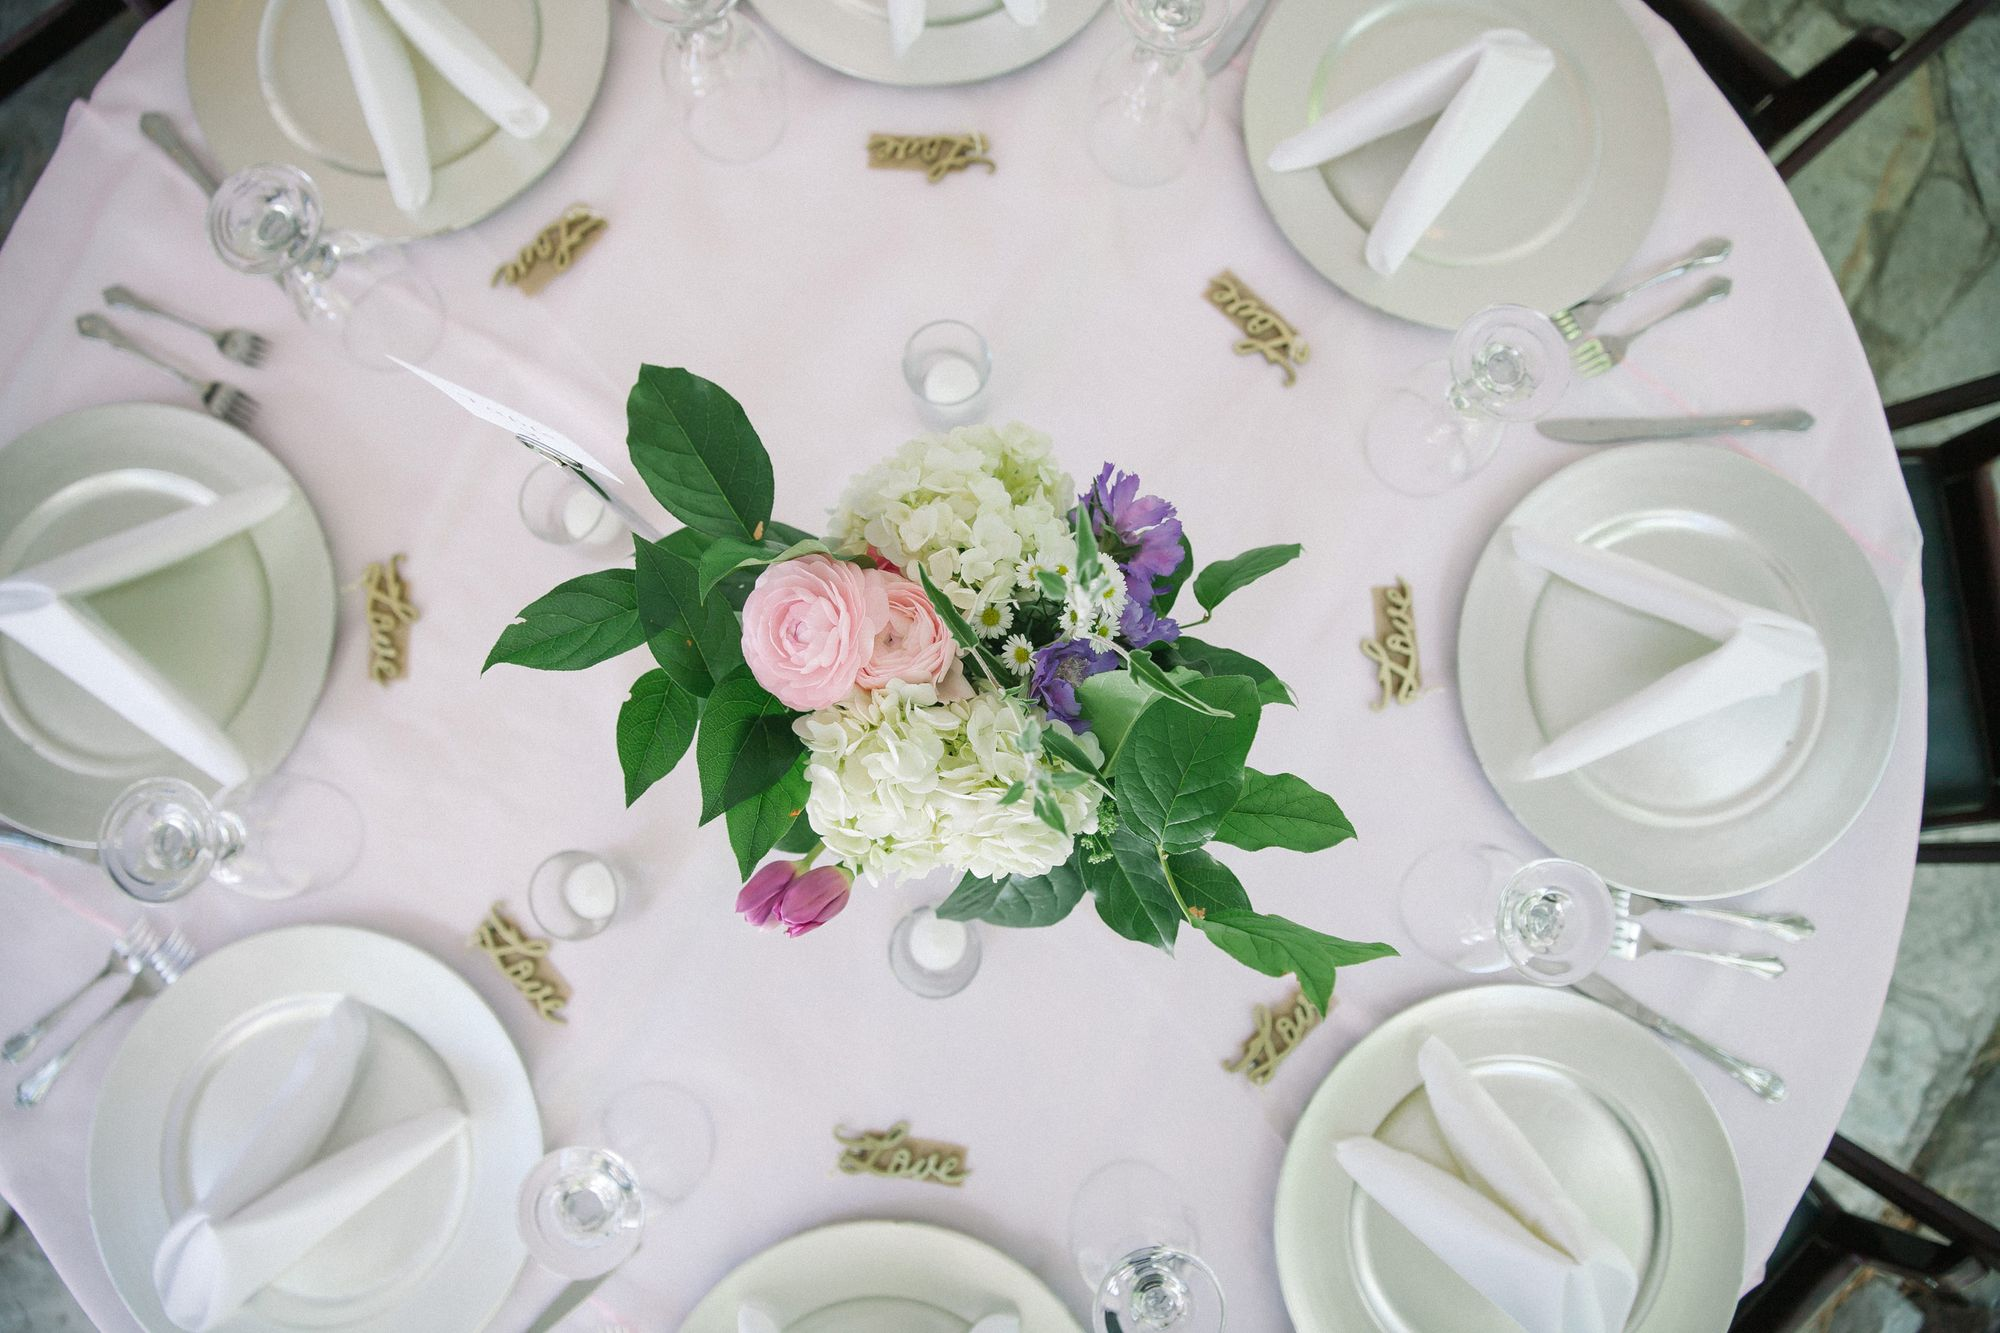 Claire_Scott_Millcreek_Inn_Salt_Lake_City_Utah_Reception_Dinner_Table_From_Above.jpg